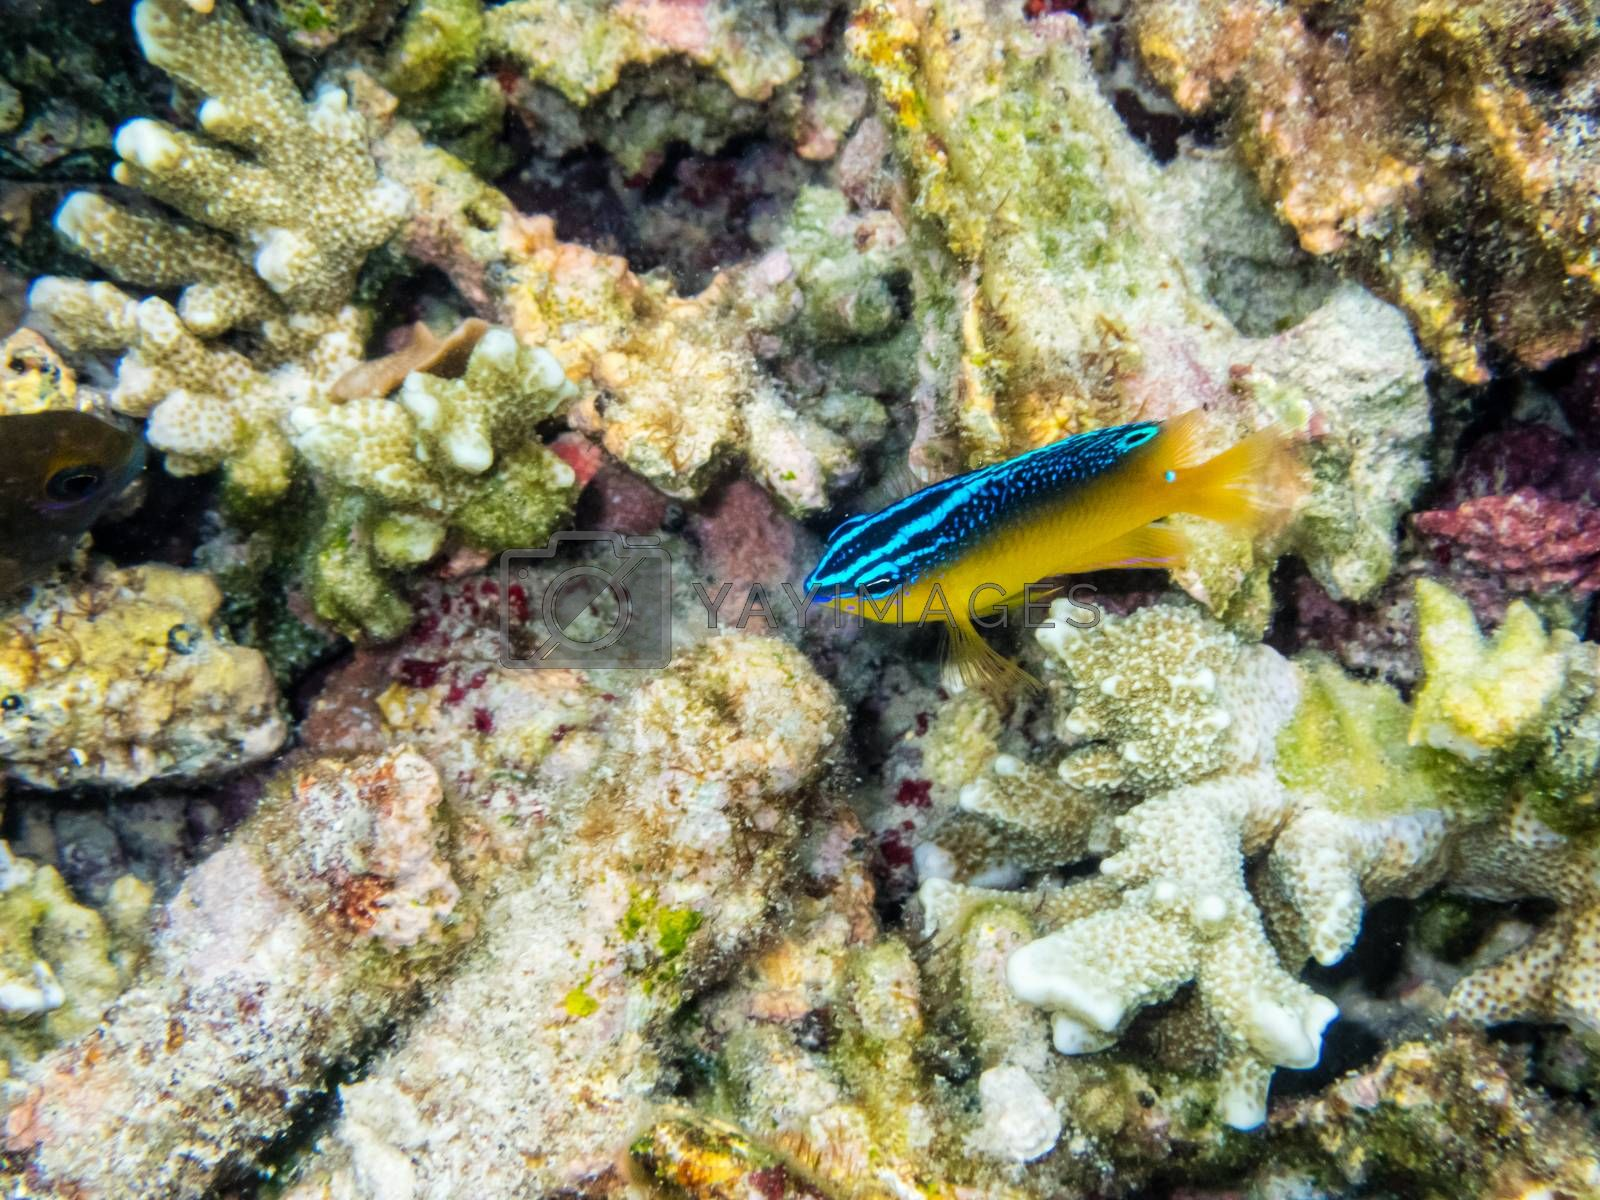 Underwater photos of Stegastes Variabilis or Cocoa Damselfish is a beautiful blue and yellow small sea fish swimming above the coral reefs at Koh Nang Yuan island in Thailand